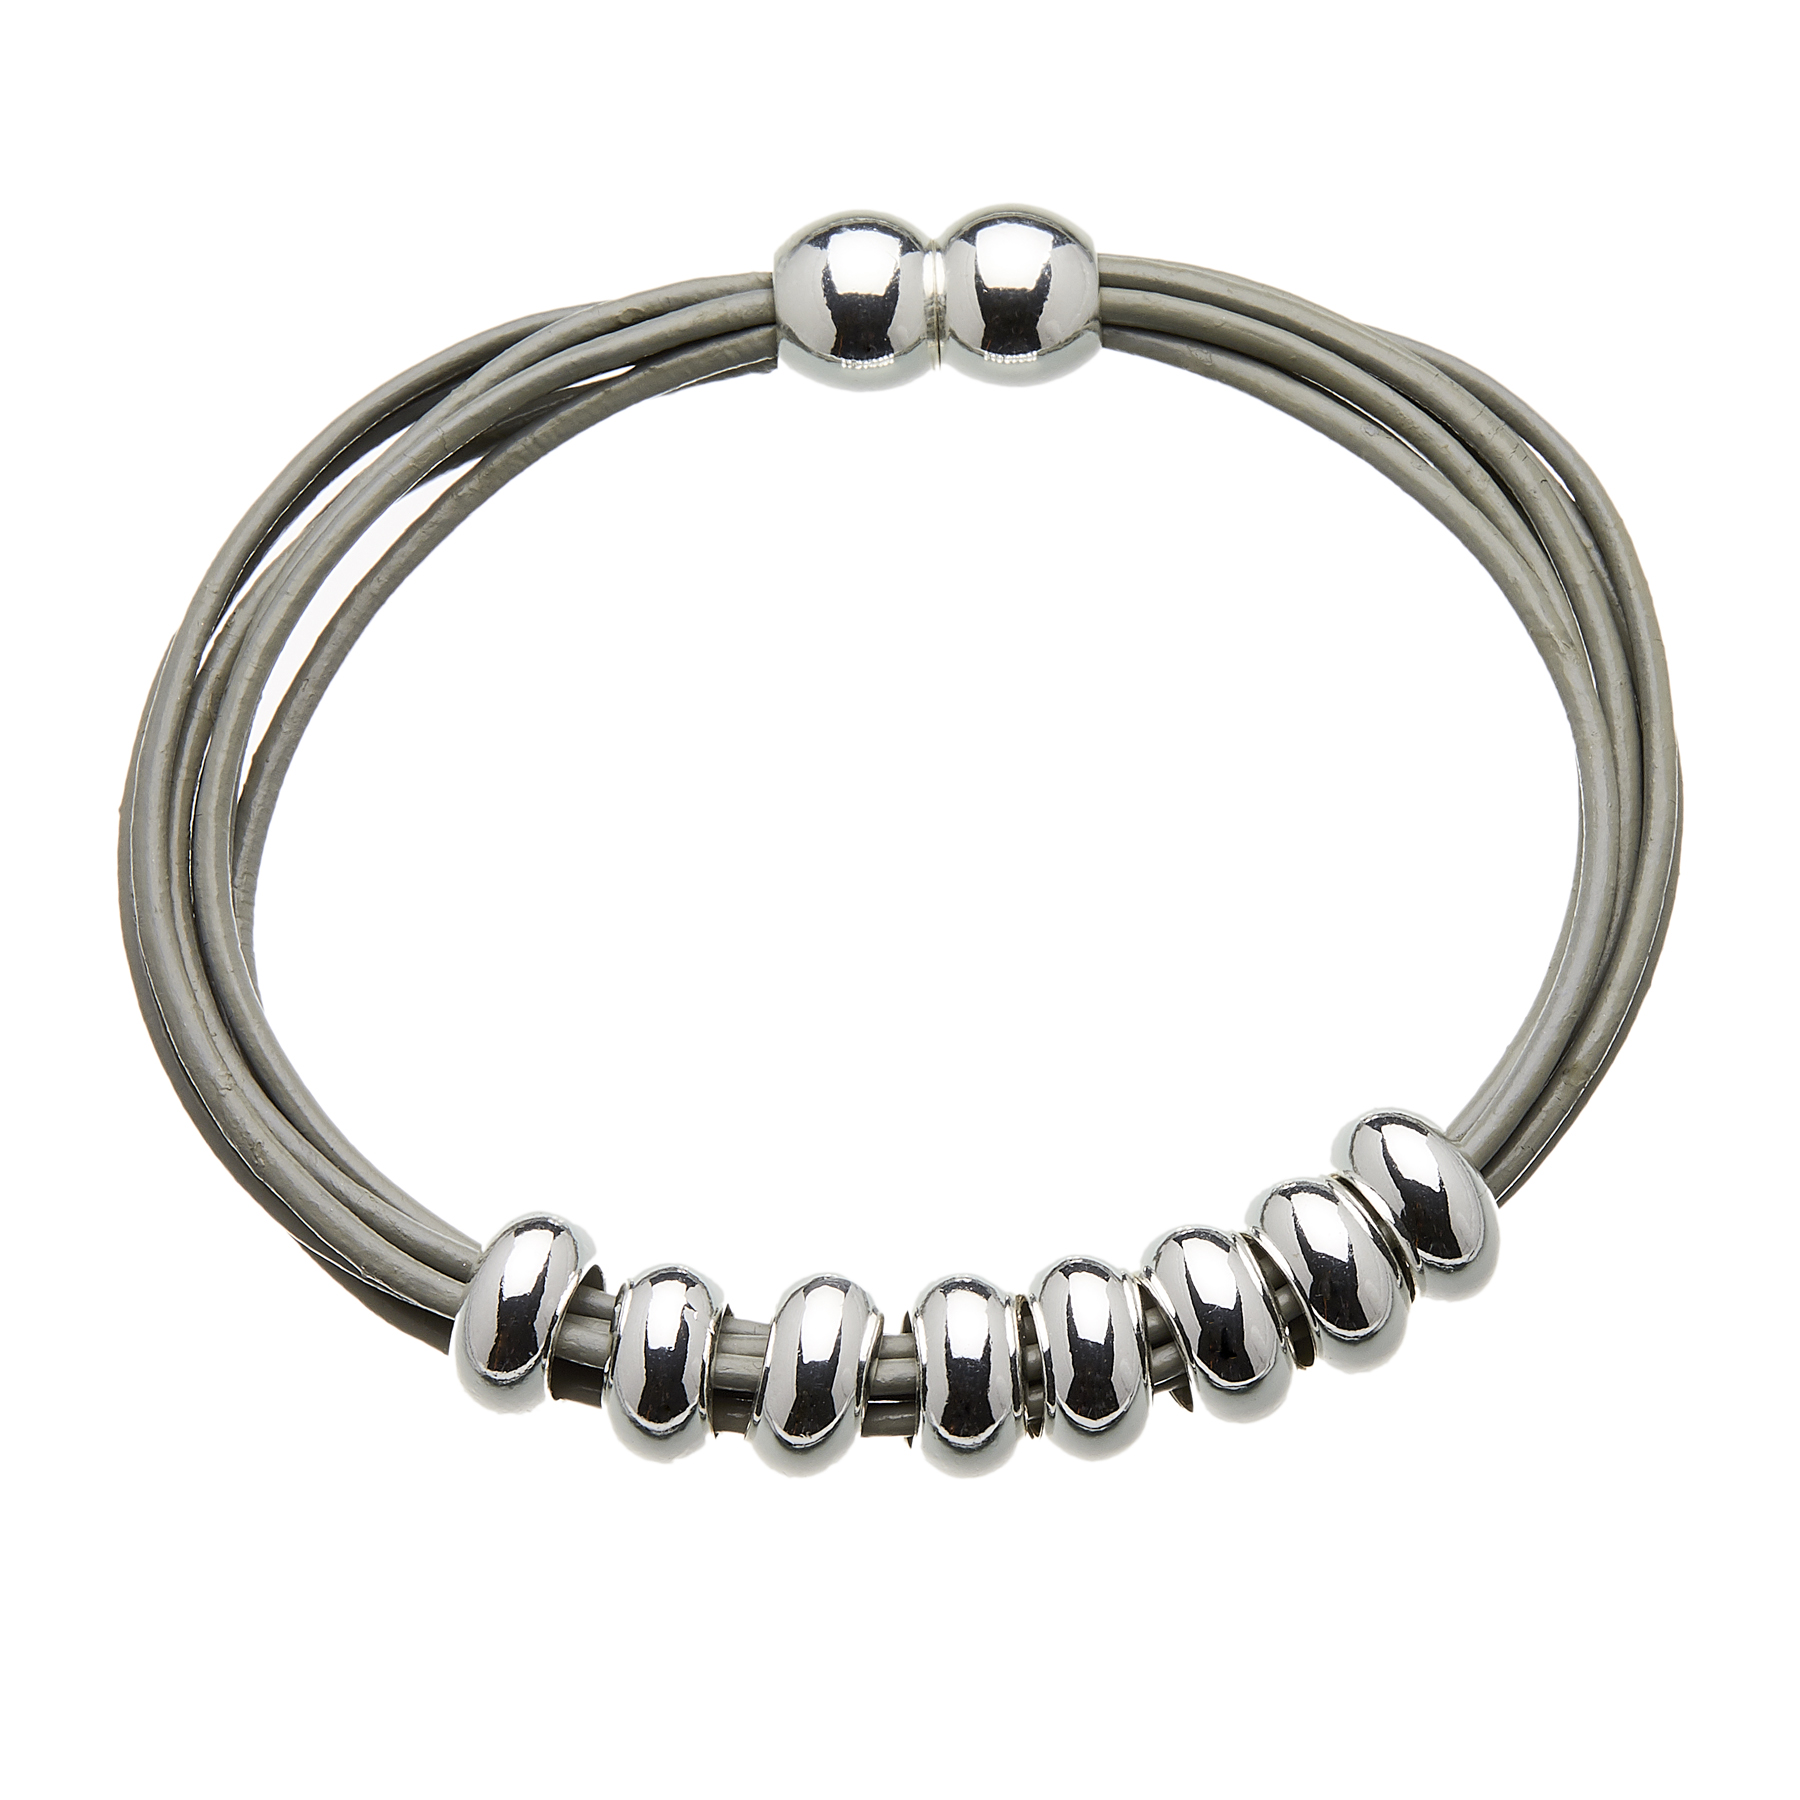 Bracelet with grey leather strands and sliding silver beads - Rhoda S